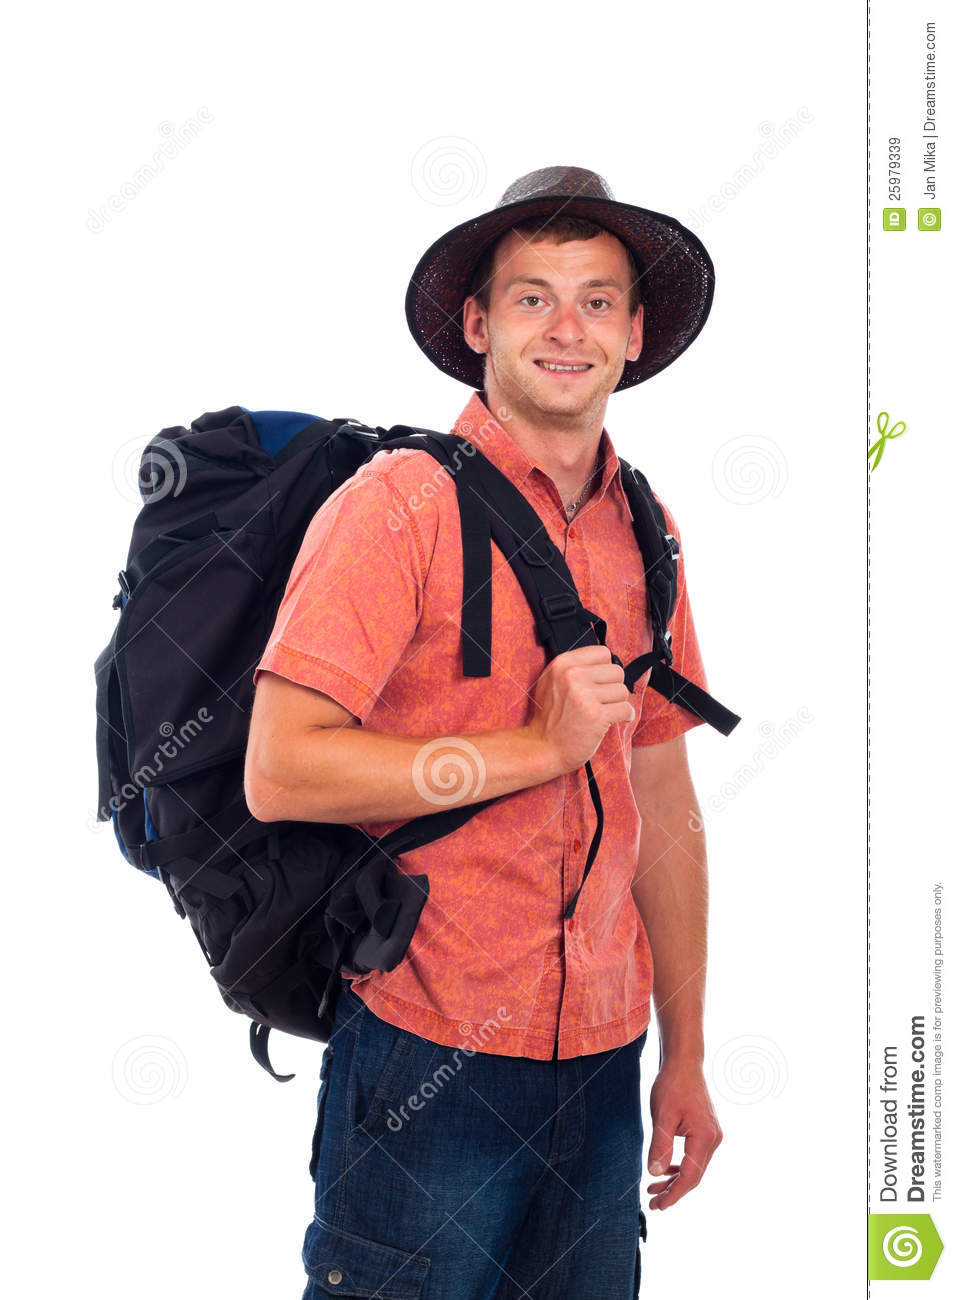 Happy man traveling with backpack, isolated on white background.